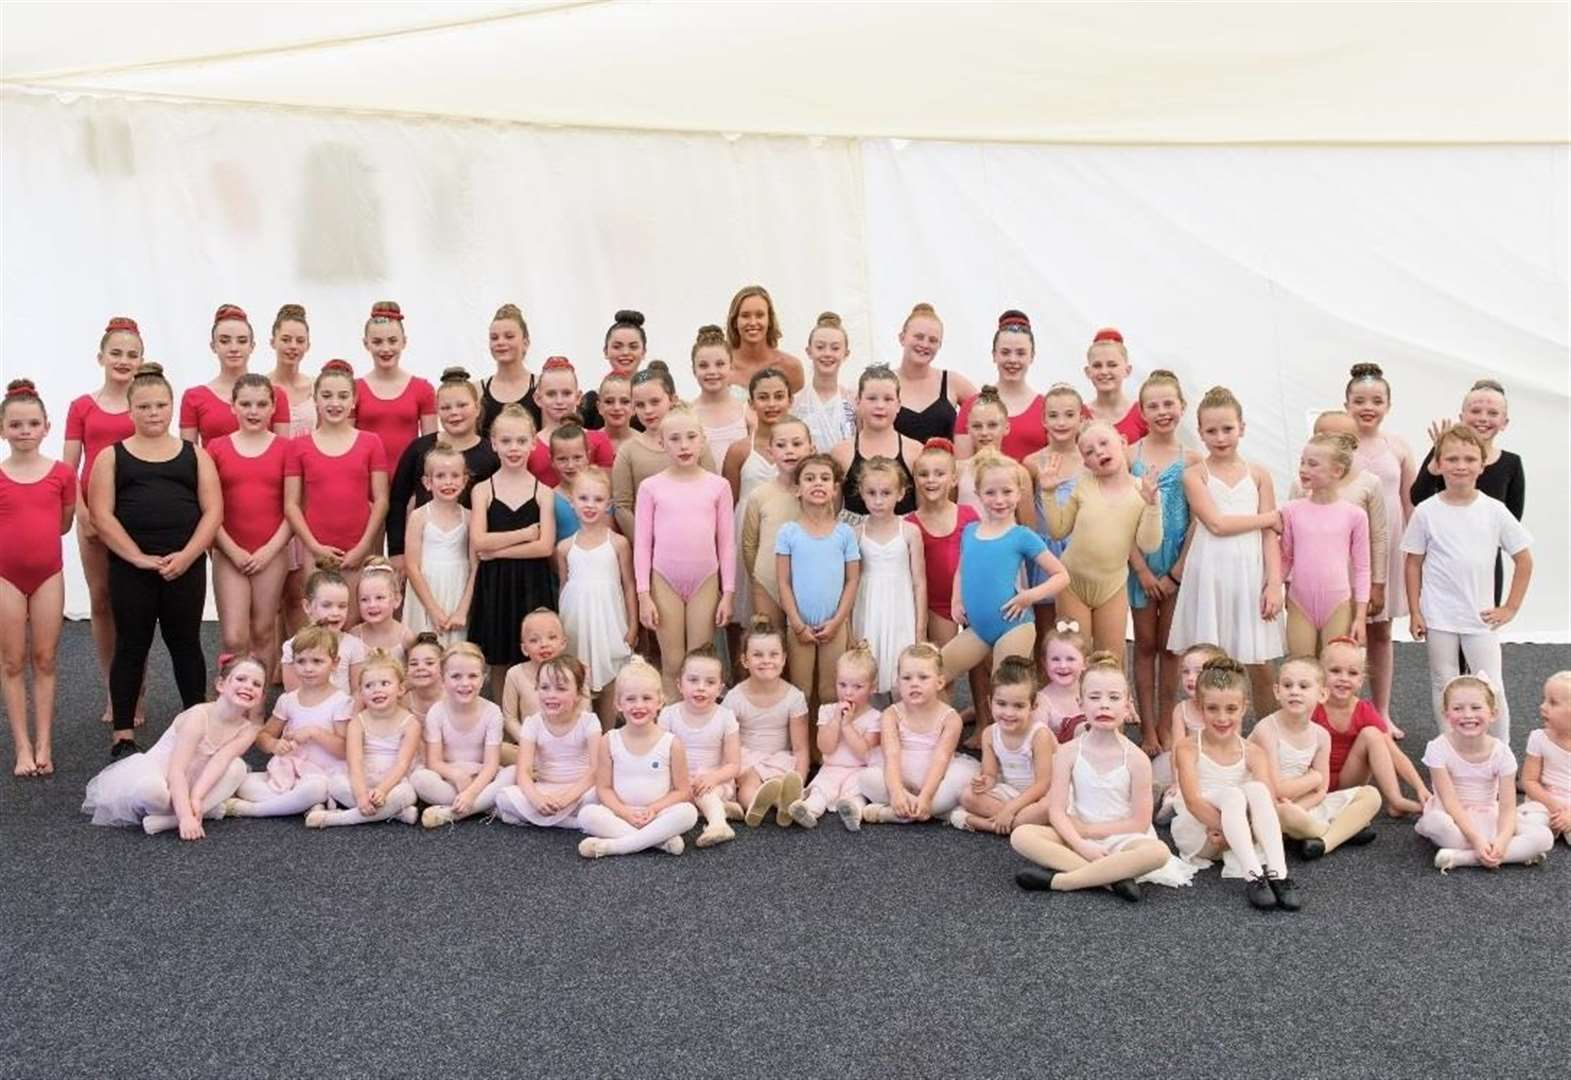 Dance school founded by a Haverhill dancer puts on a spectacular show